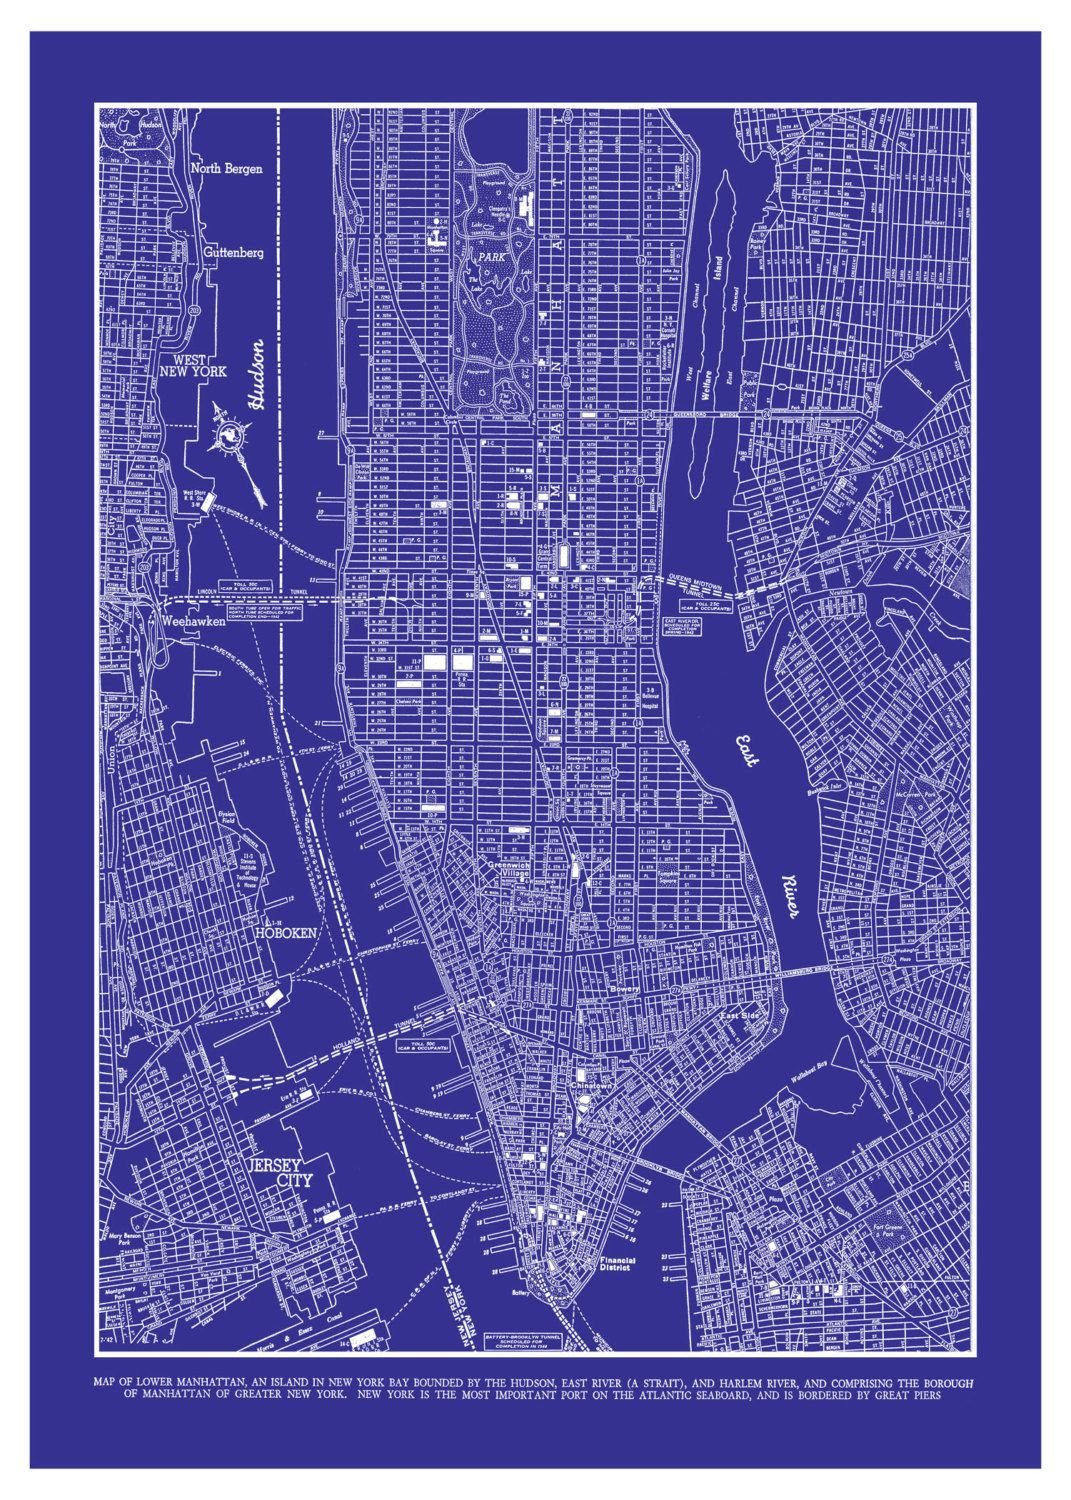 New york city map 1944 new york city manhattan street map vintage 1944 new york city manhattan street map vintage blueprint 20x30 print poster 2995 via etsy malvernweather Gallery